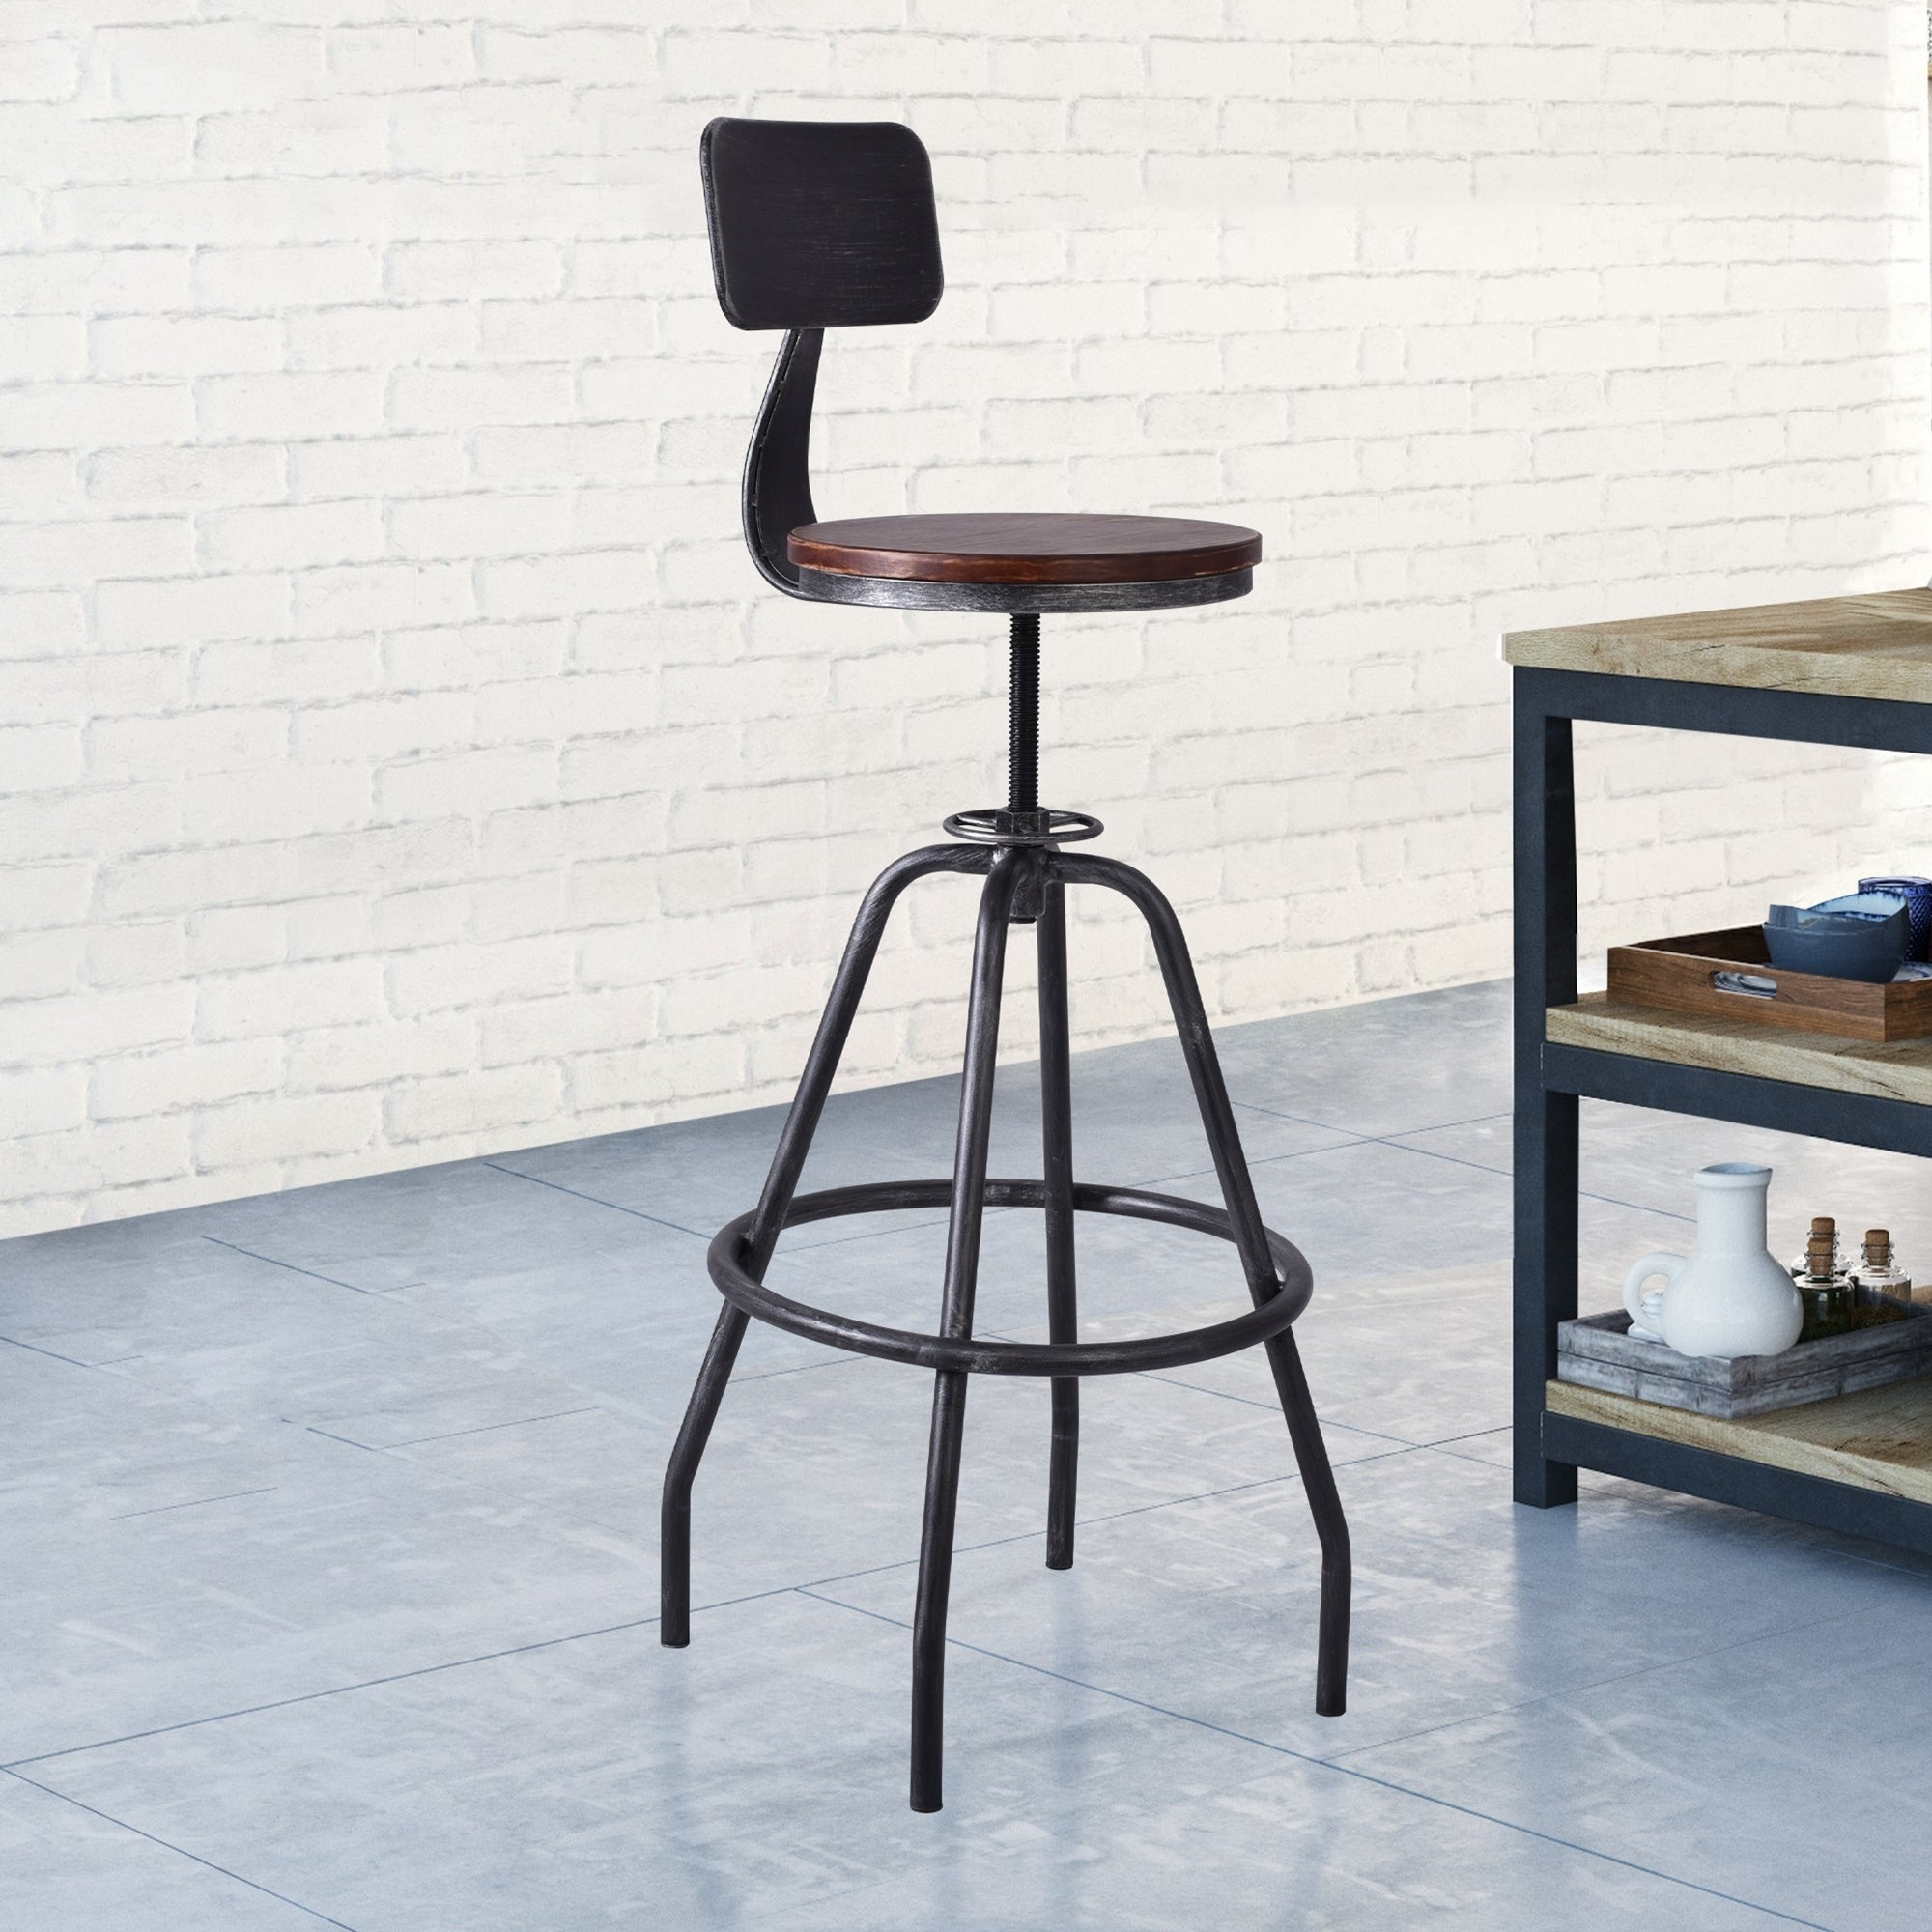 Cool Douglas Industrial Silver Brushed Grey Finish Adjustable Barstool With Rustic Pine Wood Seat Machost Co Dining Chair Design Ideas Machostcouk